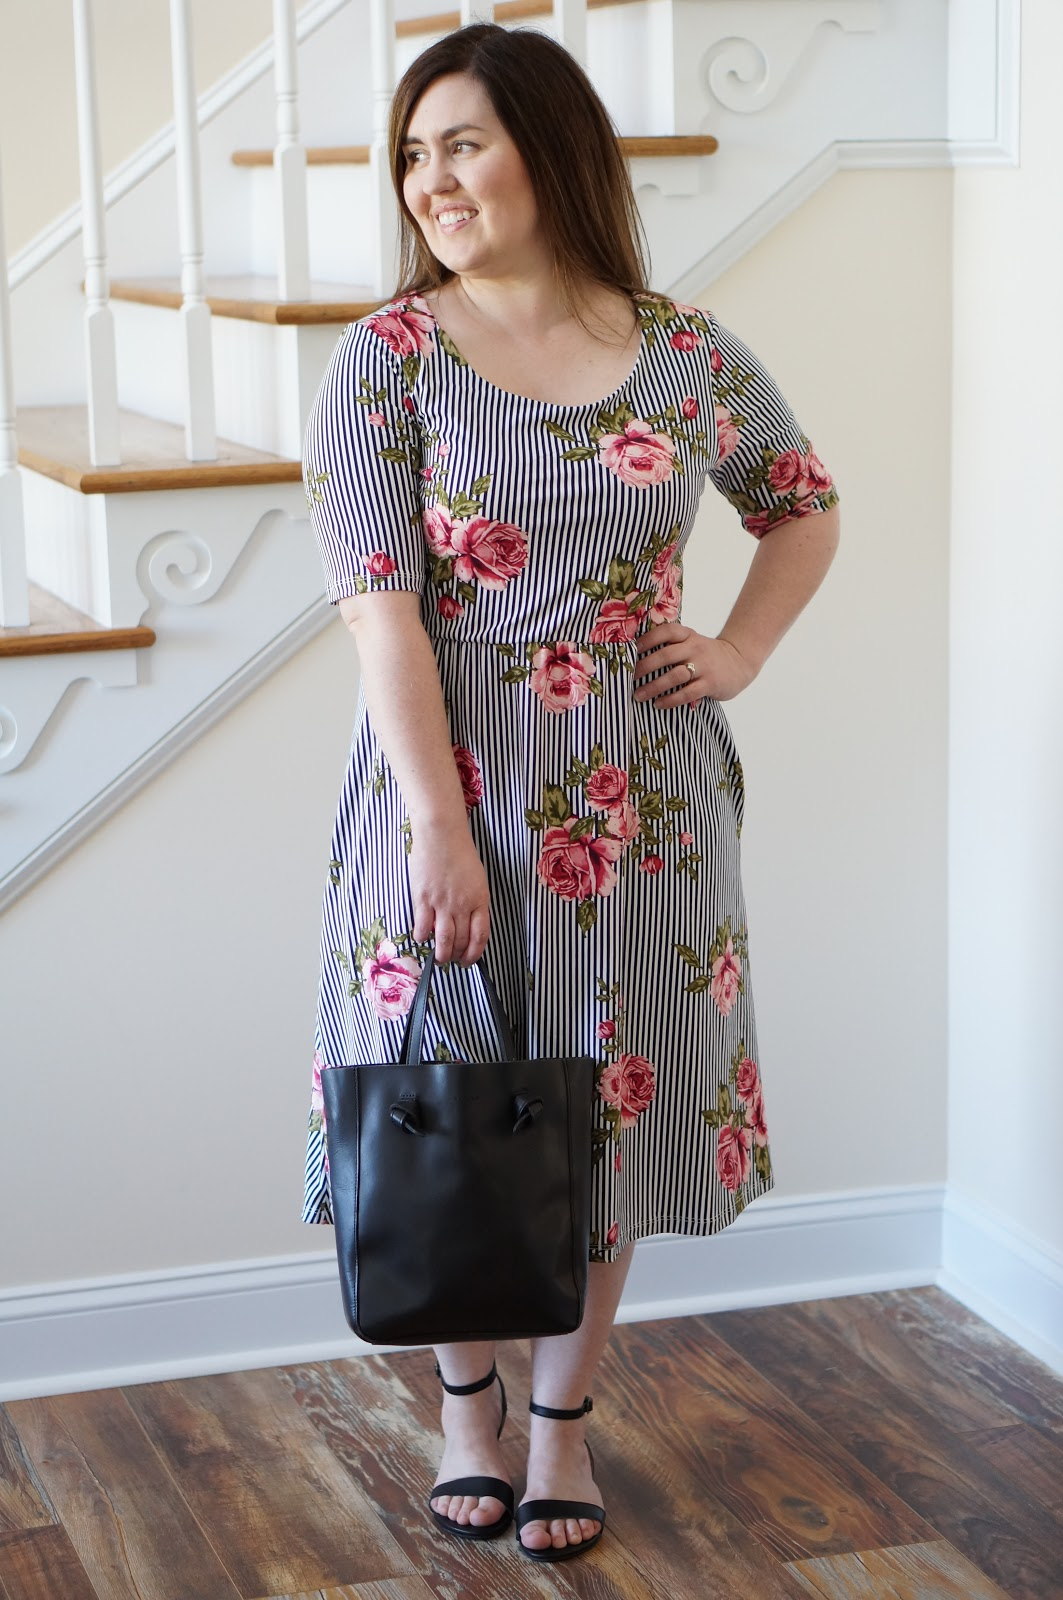 Popular North Carolina style blogger Rebecca Lately shares her favorite piece from The Flourish Market.  Click here to read more!